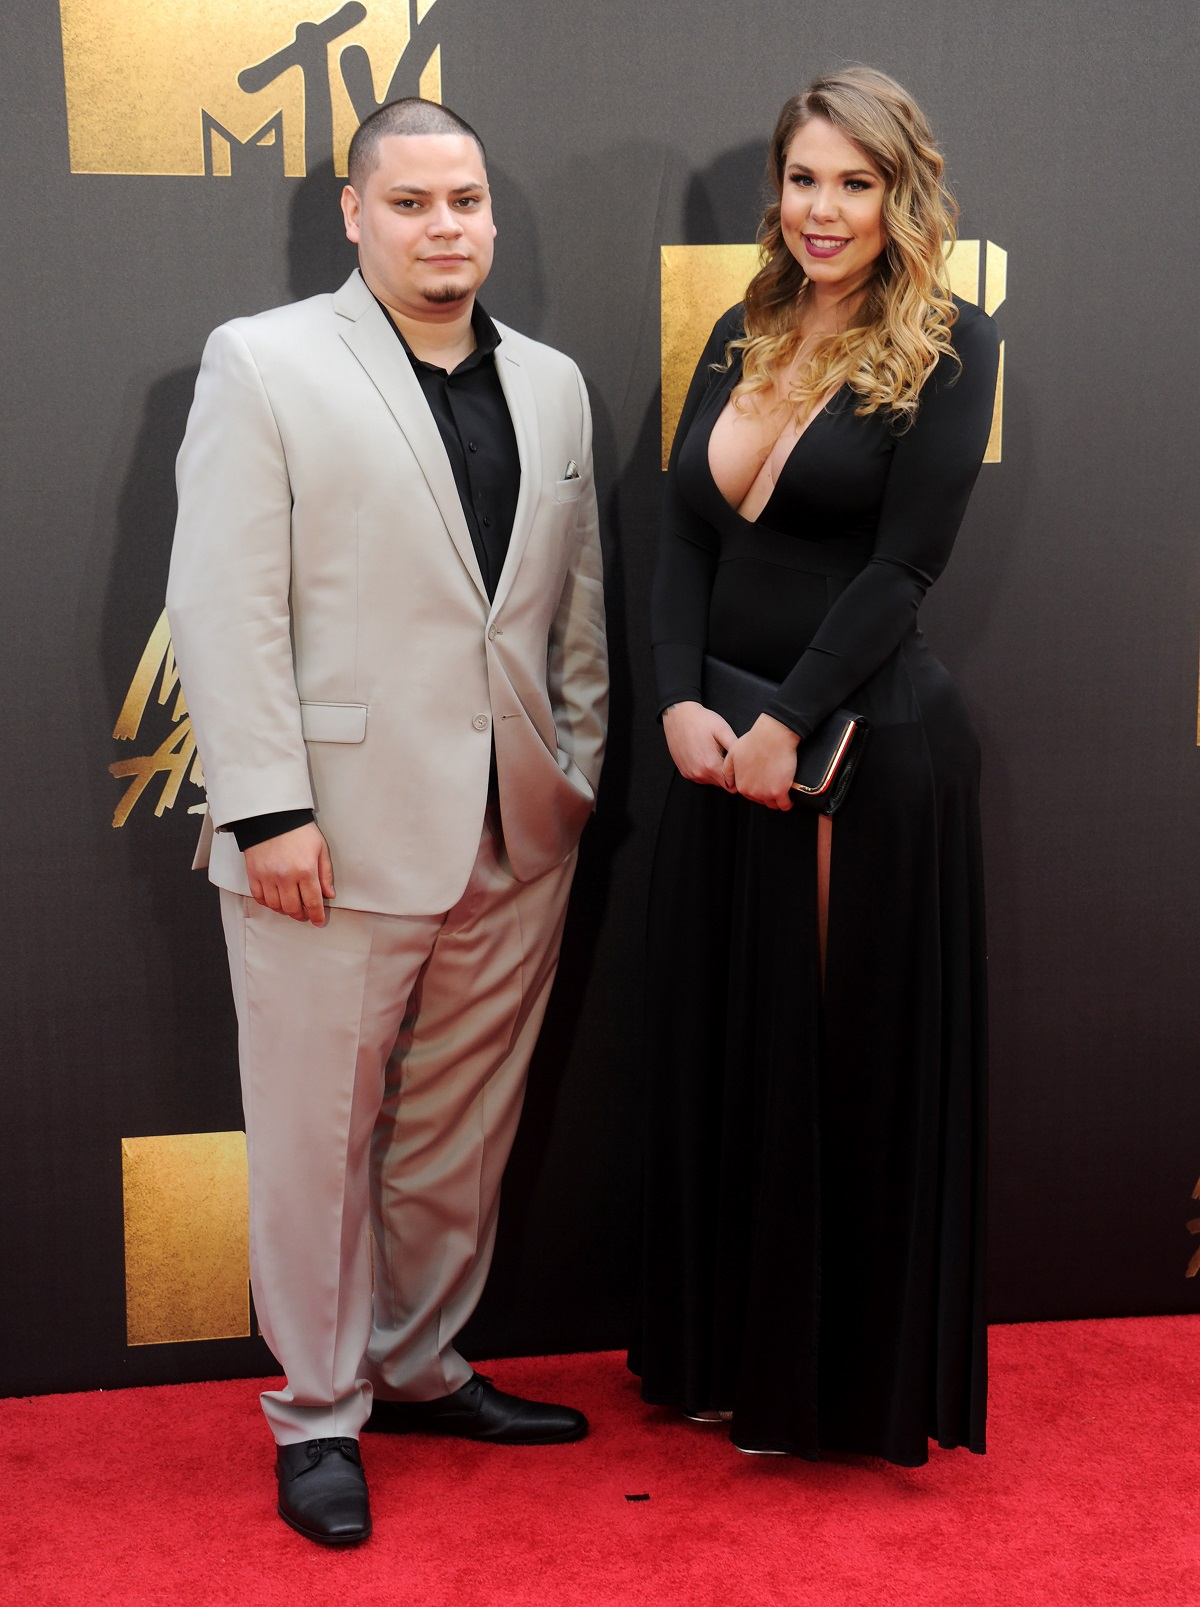 Kailyn Lowry and Jo Rivera